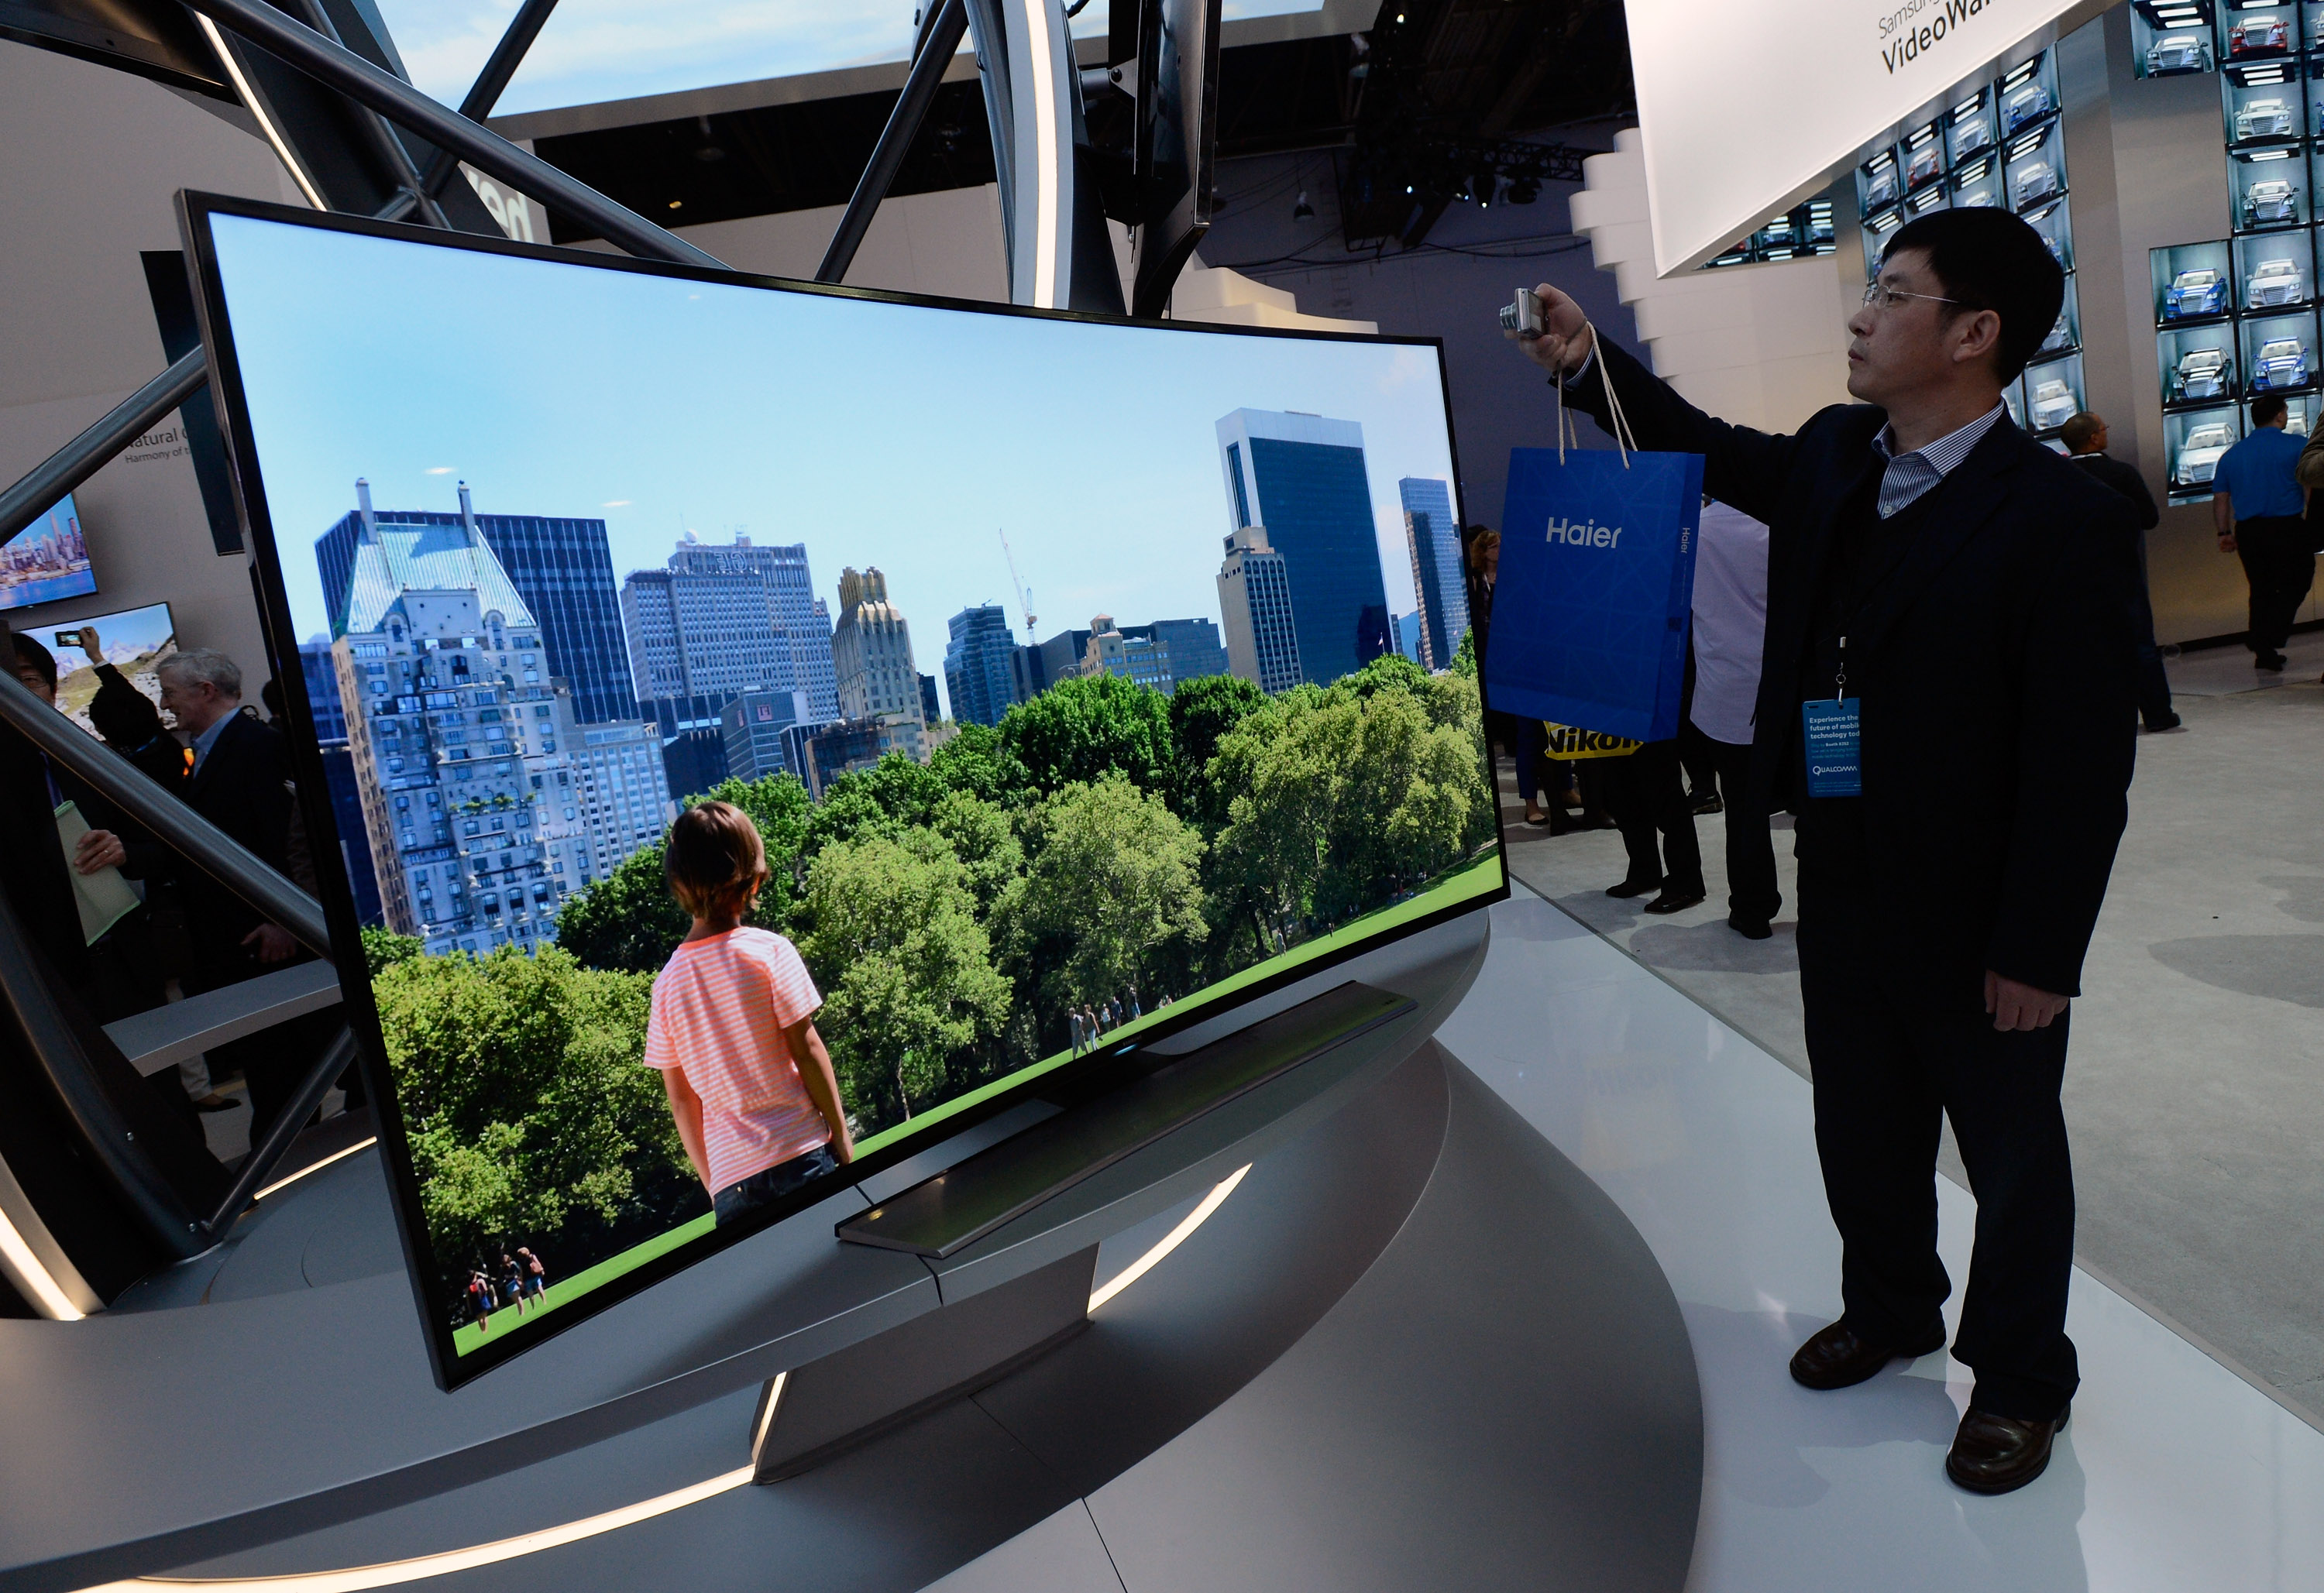 A Samsung curved OLED television is on display at the Samsung booth at the 2014 International CES at the Las Vegas Convention Center on January 7, 2014 in Las Vegas, Nevada.